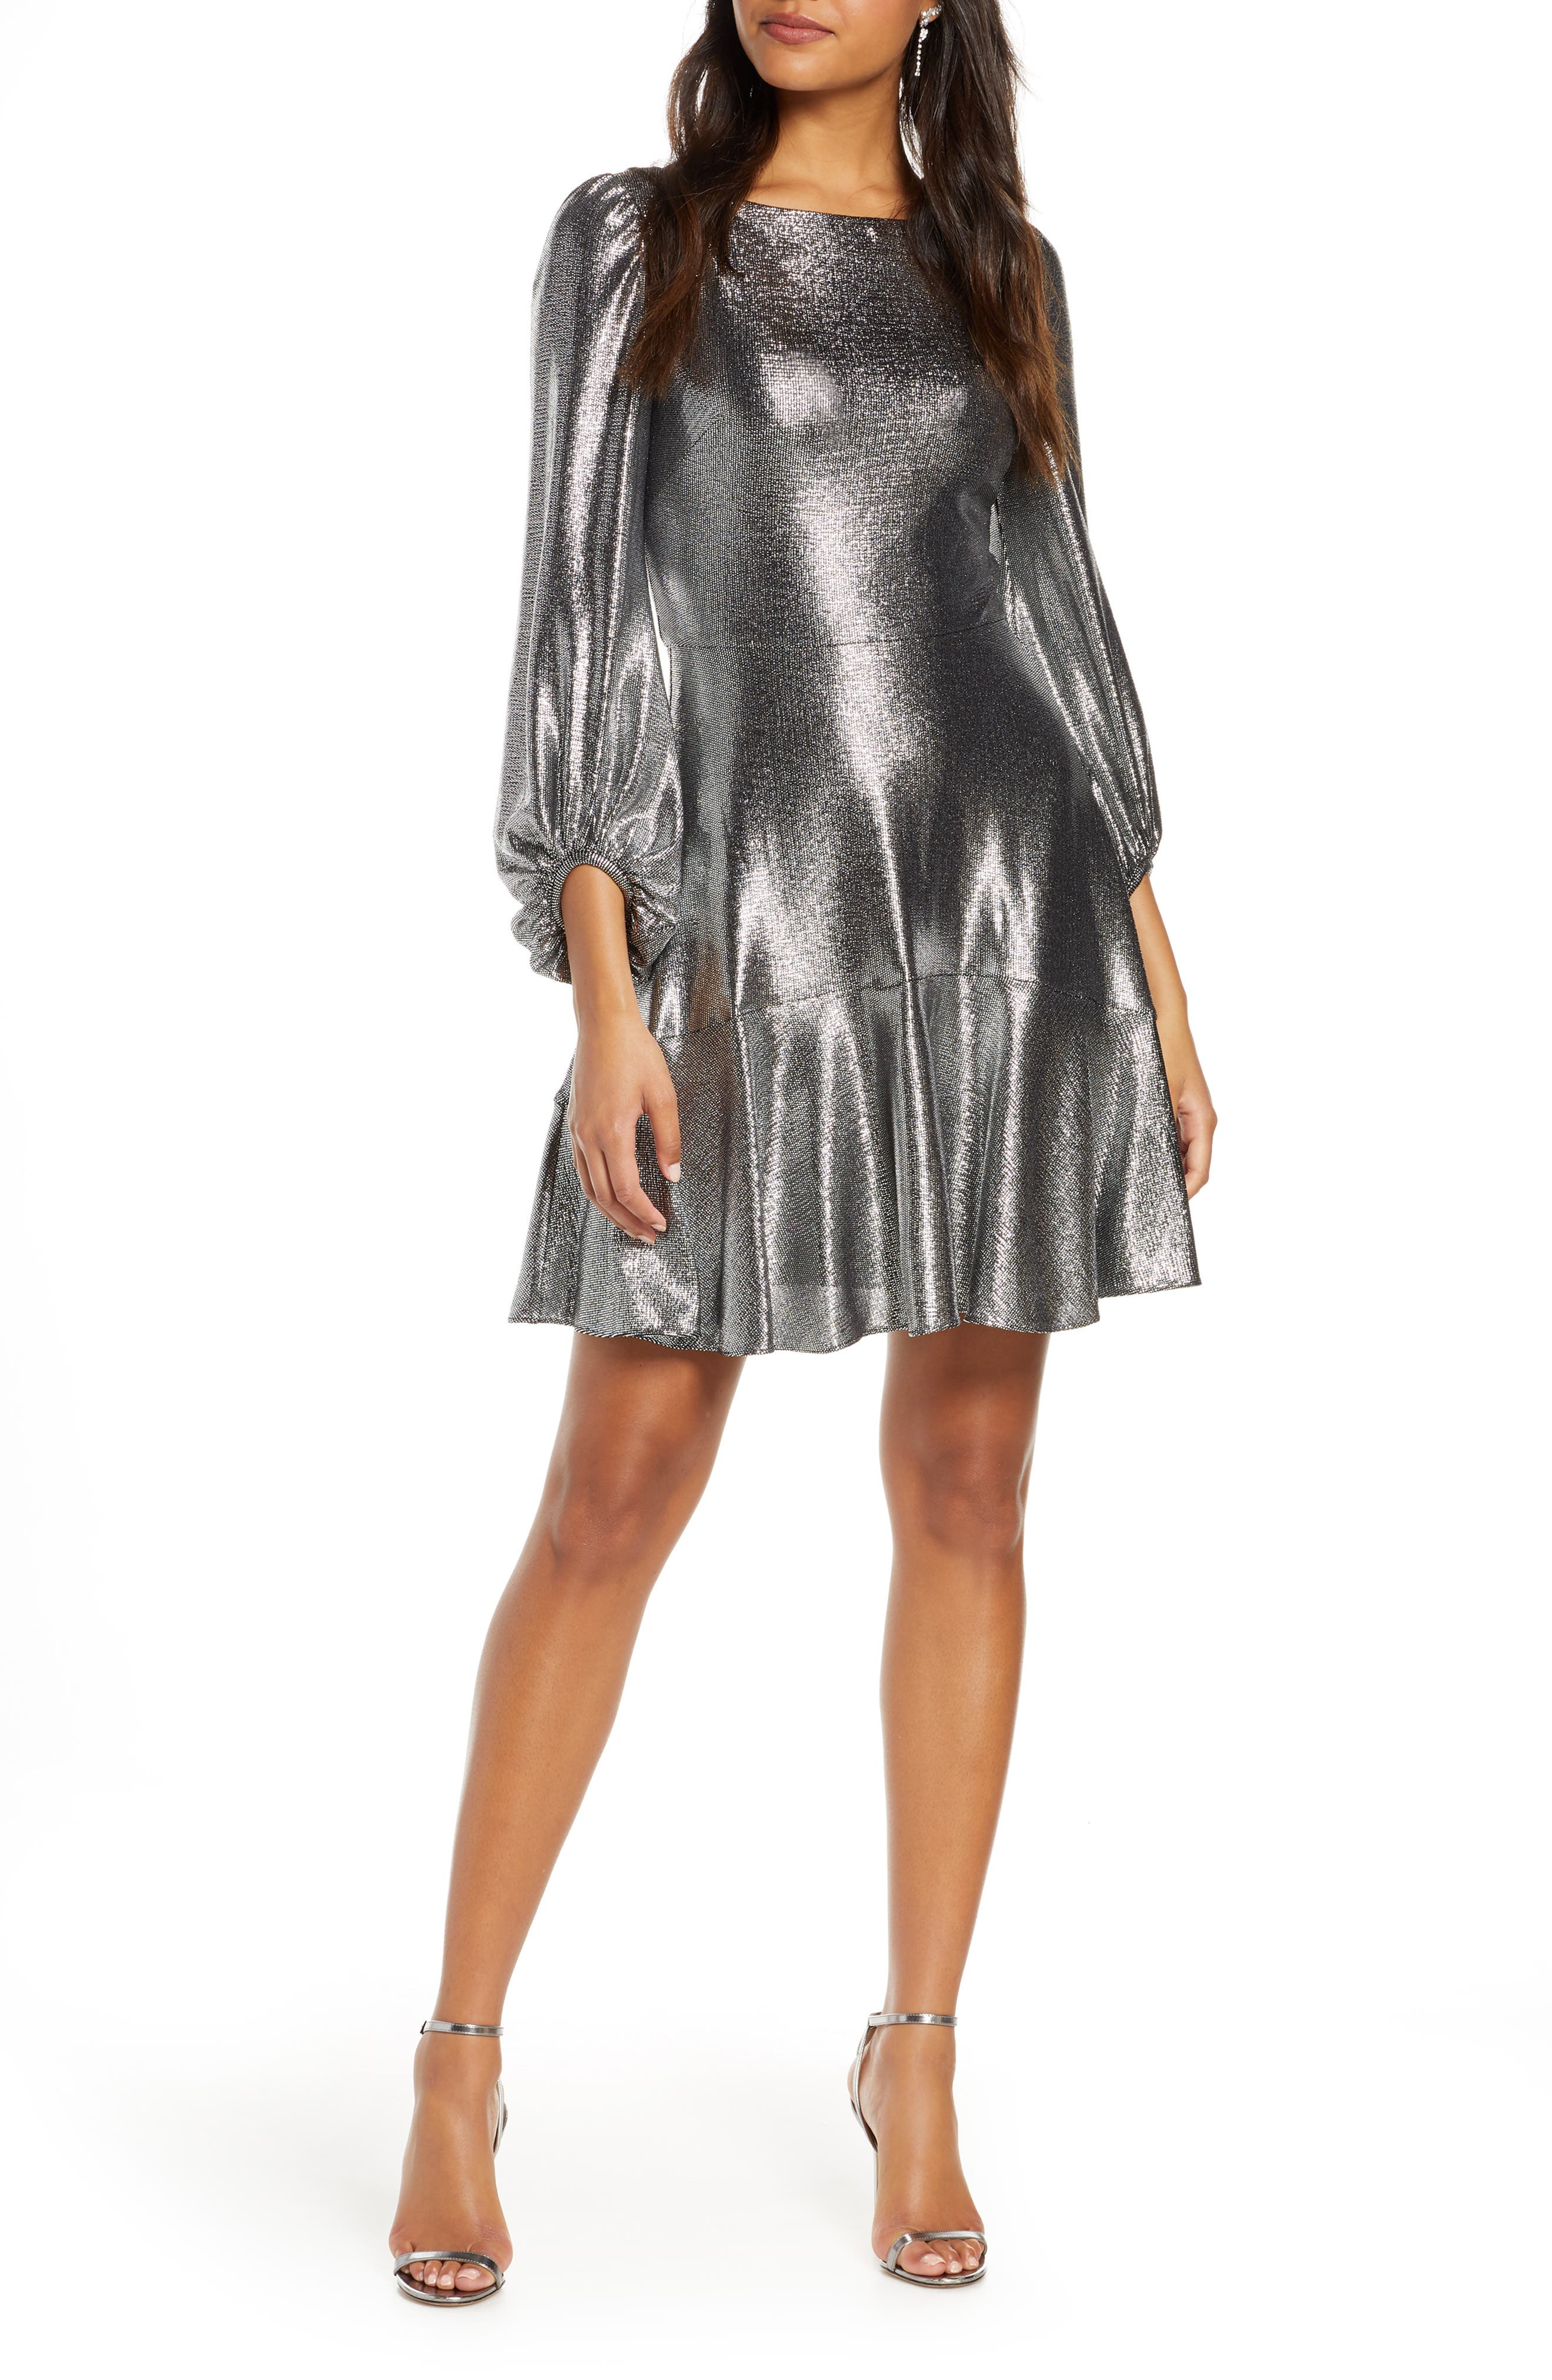 1980s Clothing, Fashion | 80s Style Clothes ELIZA J Long Sleeve Metallic Jersey Cocktail Dress Size 14 in Silver at Nordstrom Rack $64.97 AT vintagedancer.com